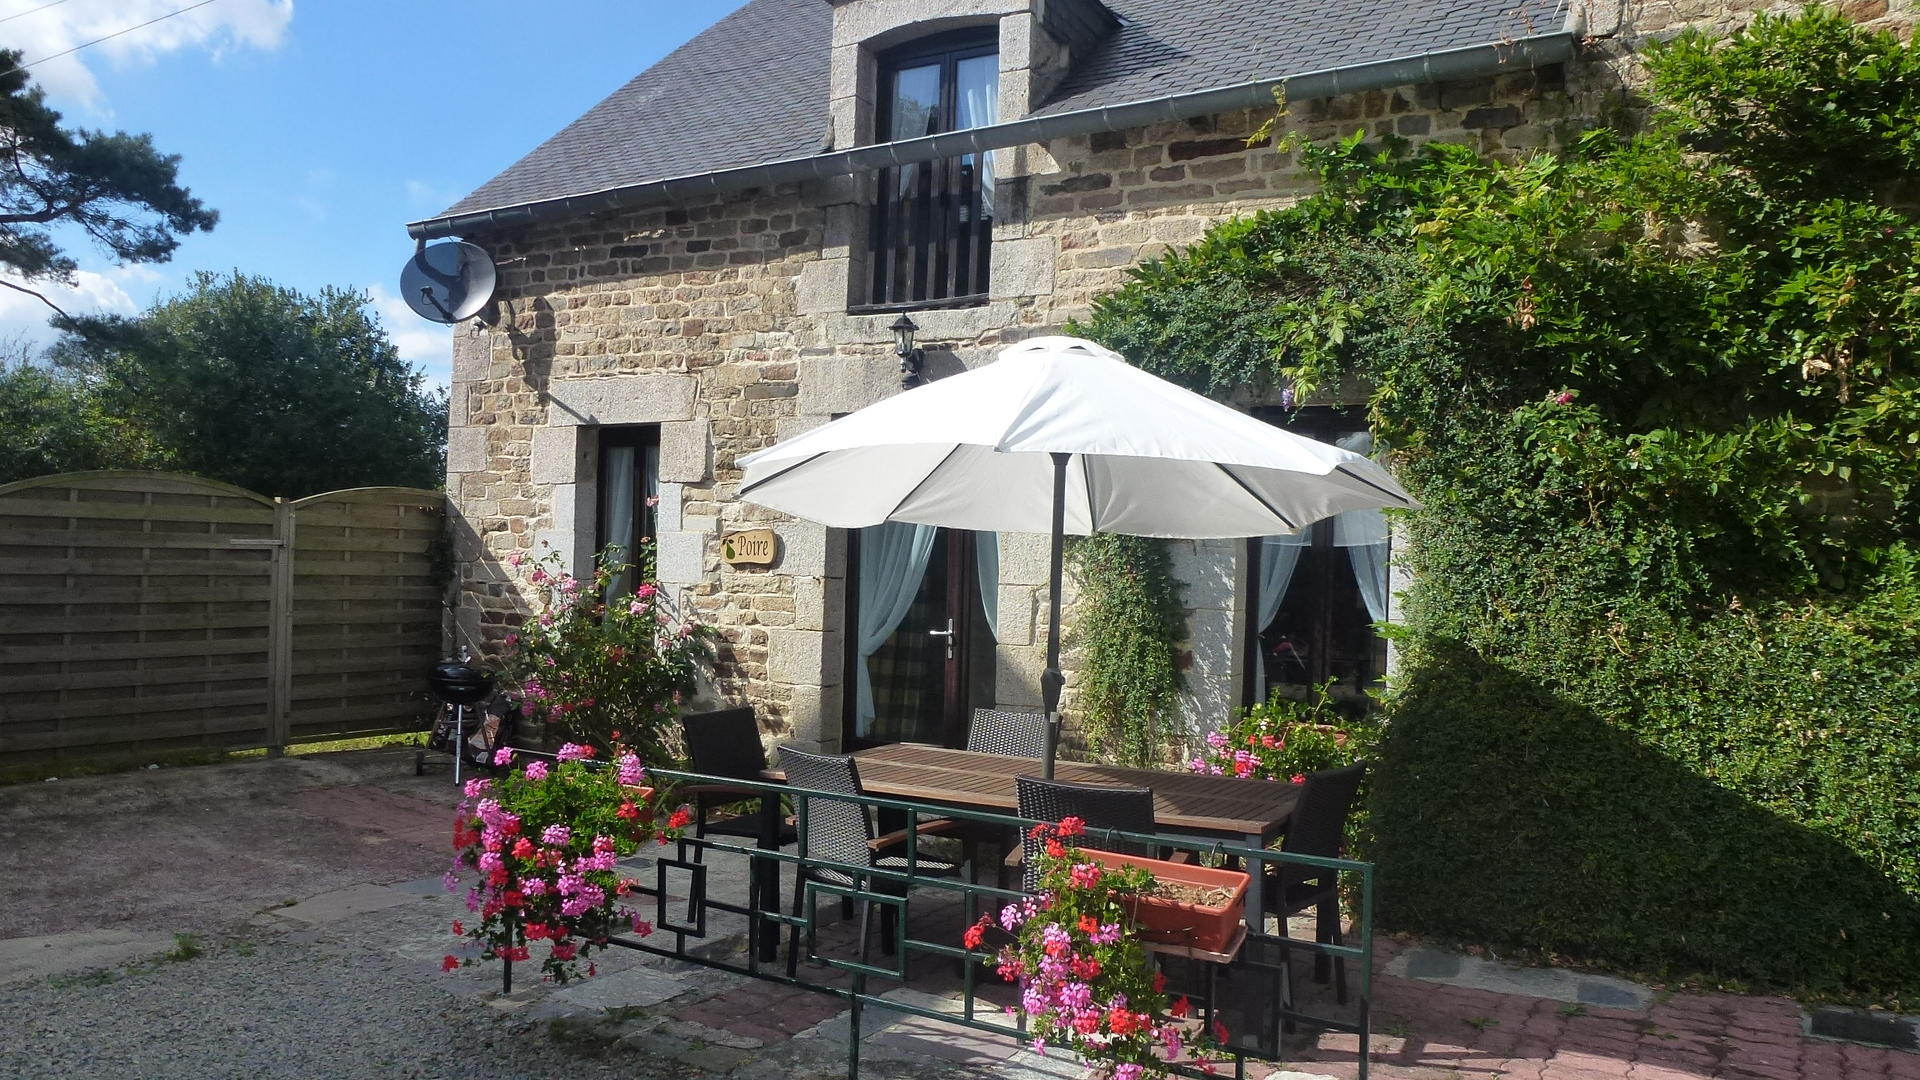 Self-catering holiday cottage in Brittany - CHP